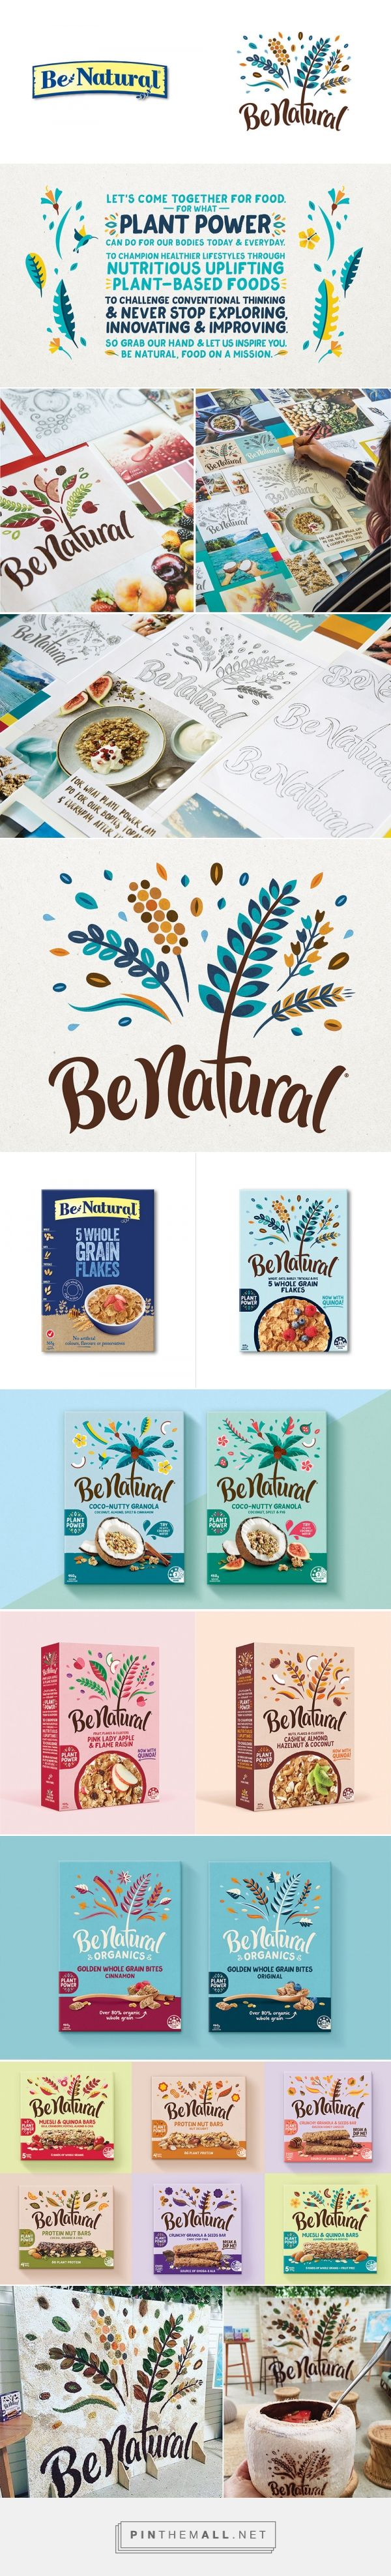 Brand New: New Logo and Packaging for Be Natural by Loop Brands - created on 2017-02-13 16:45:36